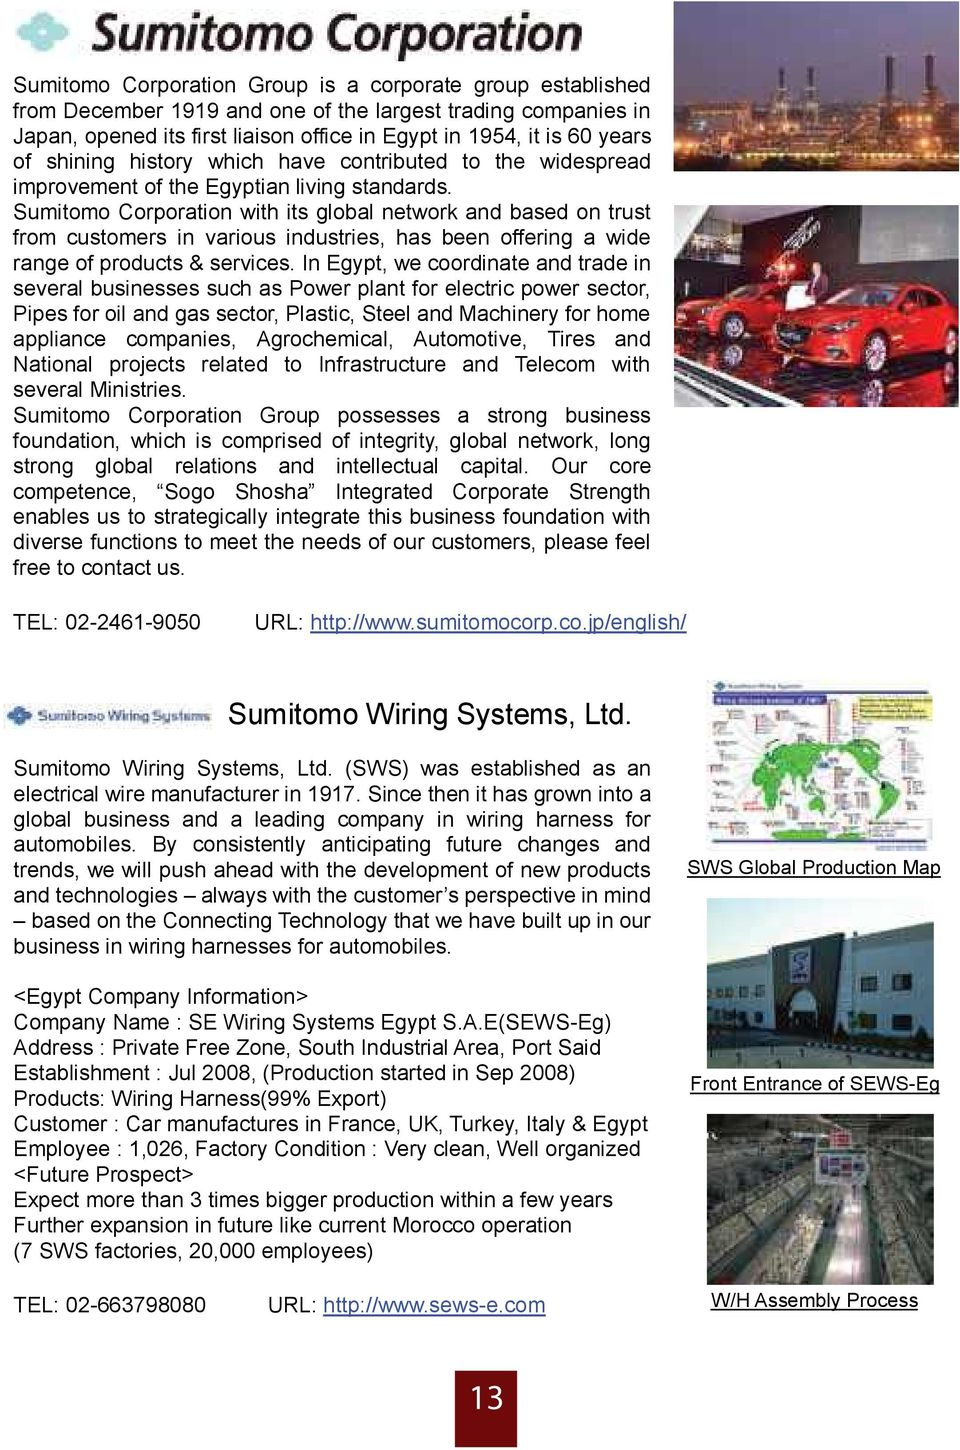 Embassy Of Japan In Egypt Jetro Cairo Office Pdf Sumitomo Wiring System Corporation With Its Global Network And Based On Trust From Customers Various Industries